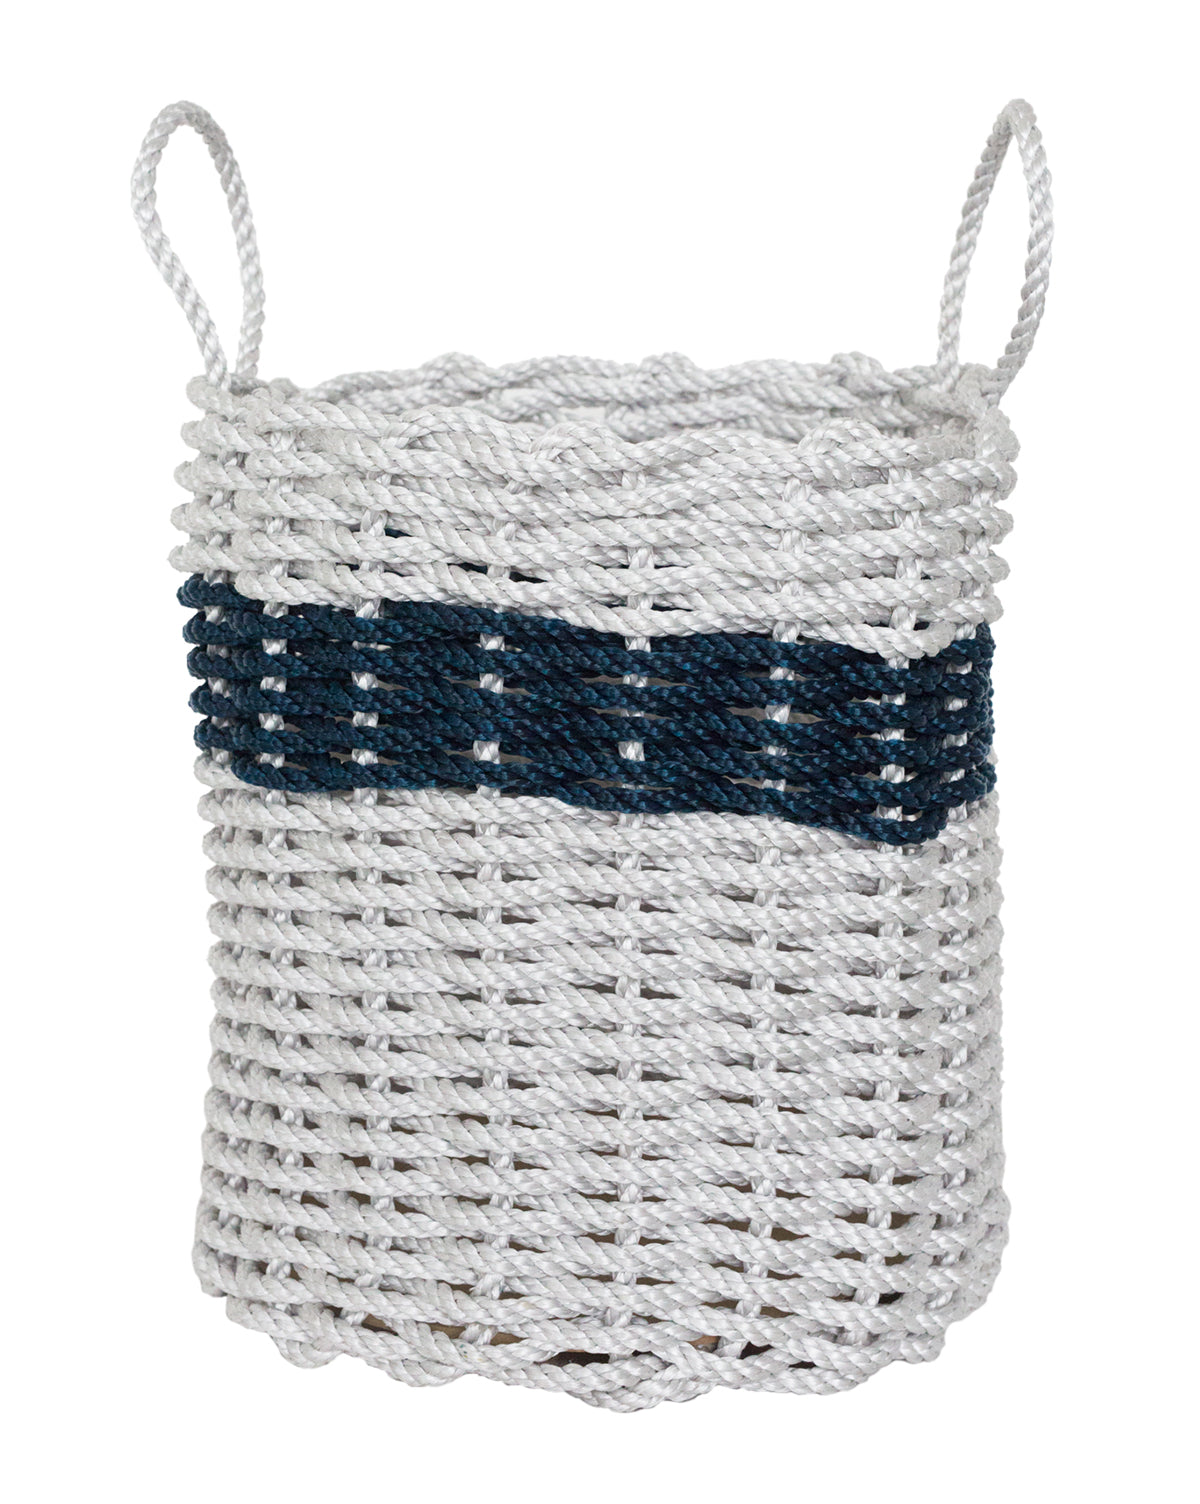 Woven Rope Basket